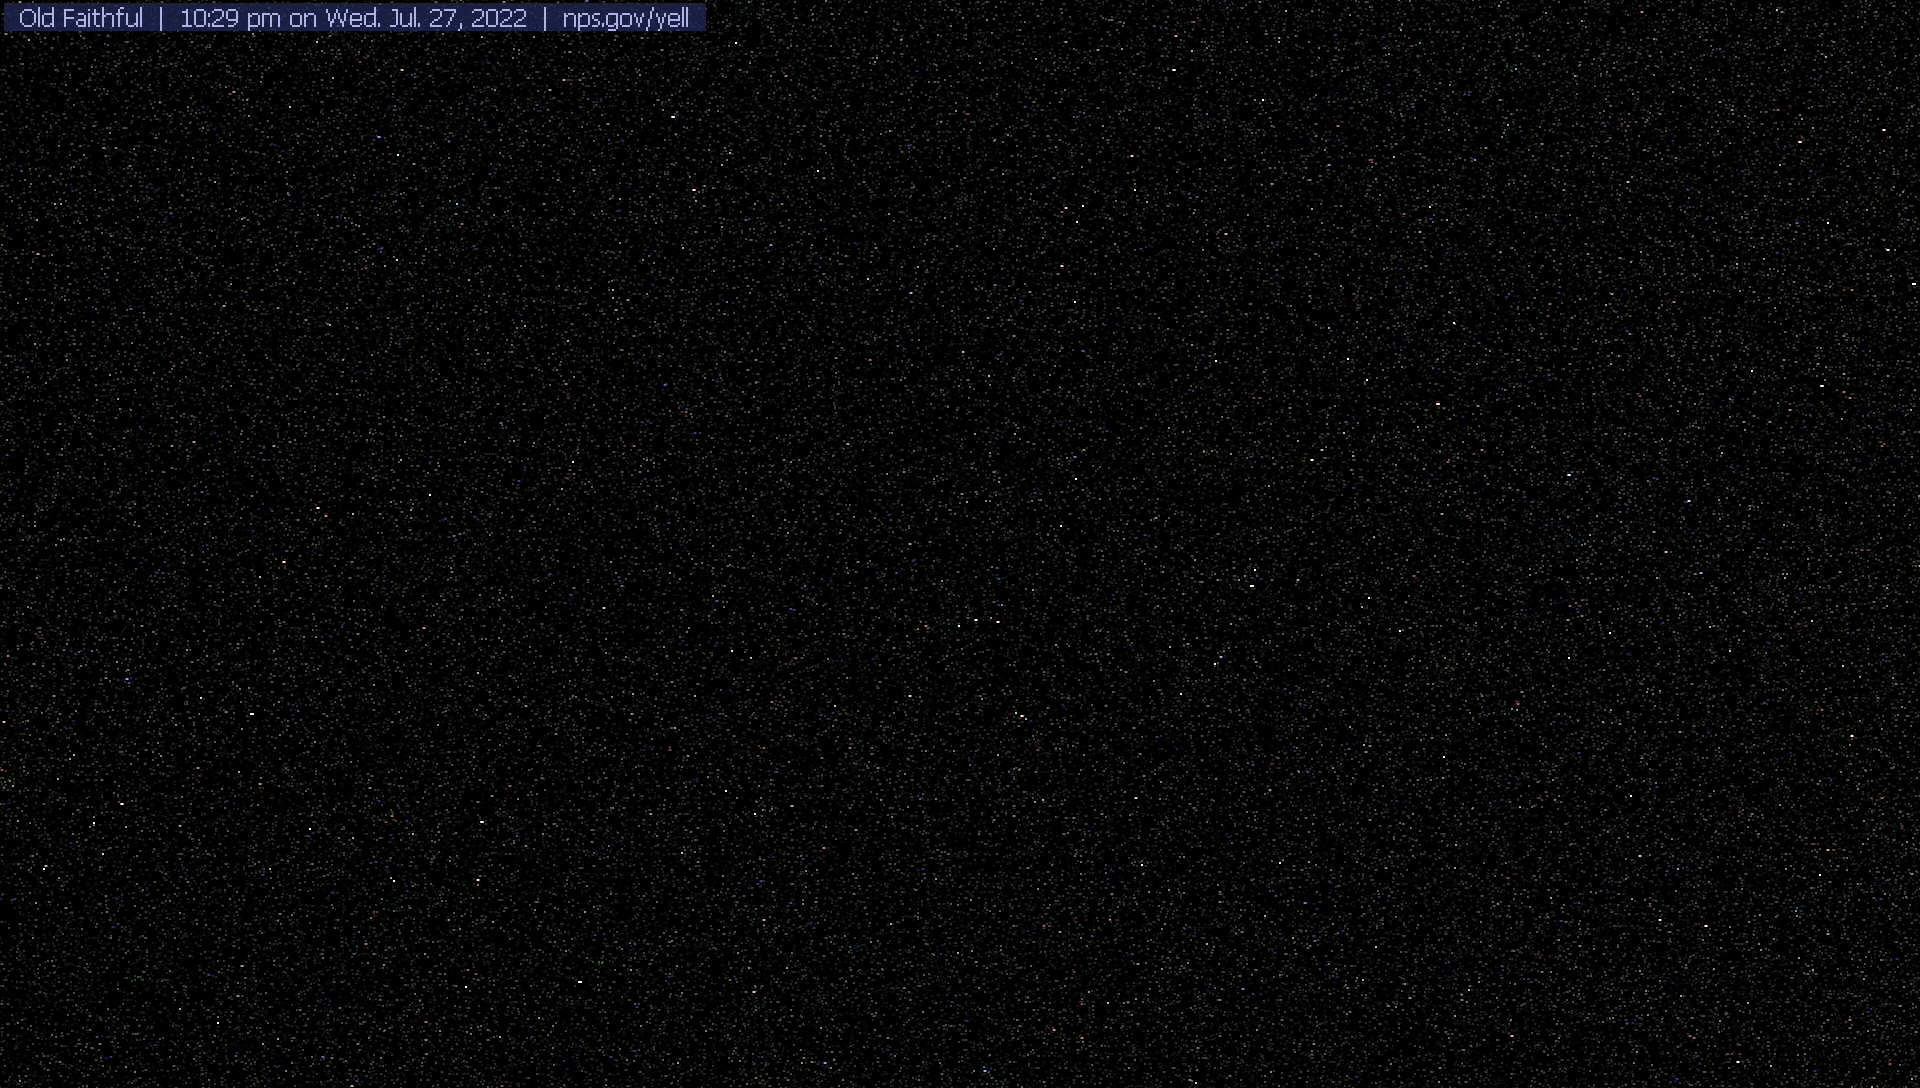 Old Faithful, Yellowstone National Park, National Park Service webcam